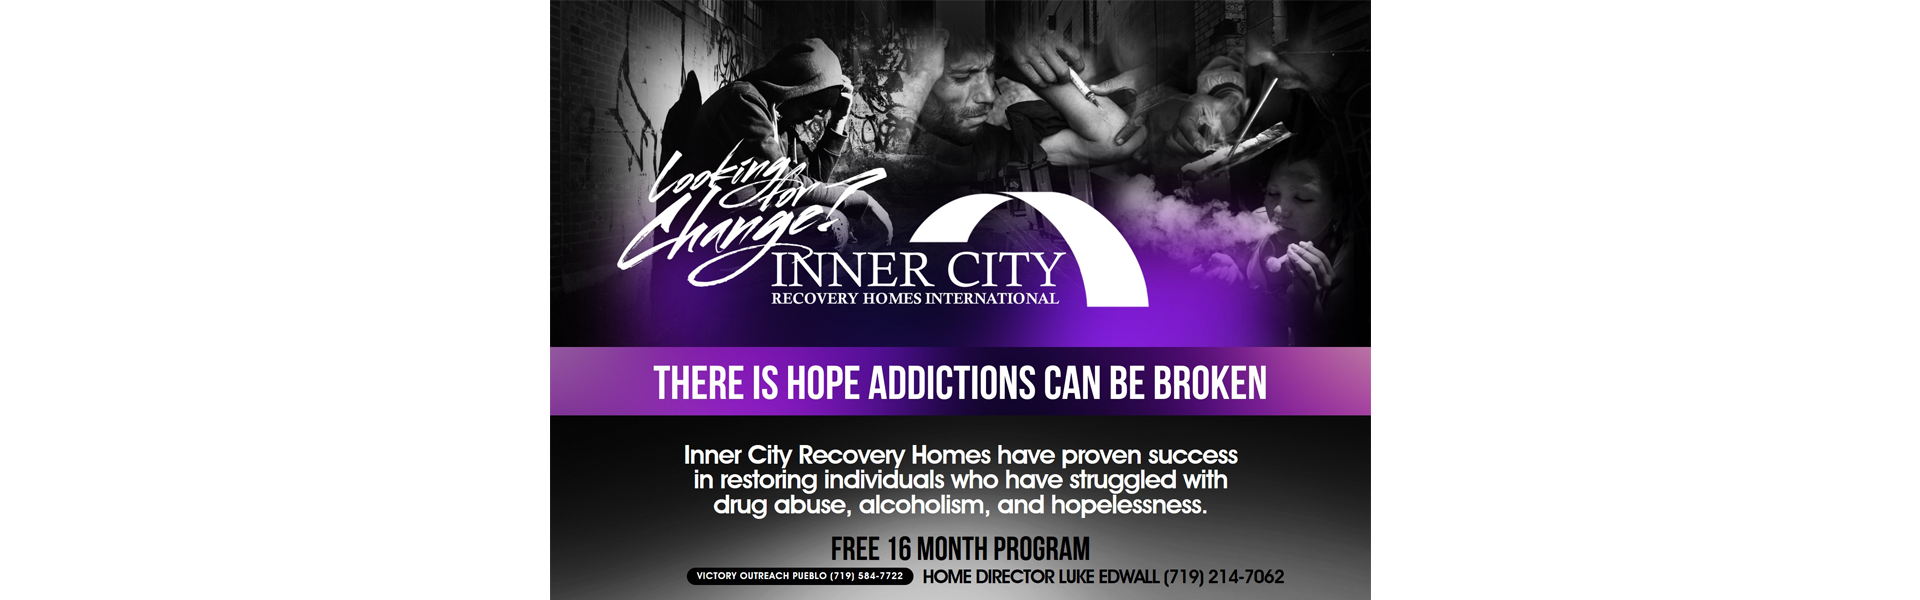 Inner City Recovery Homes